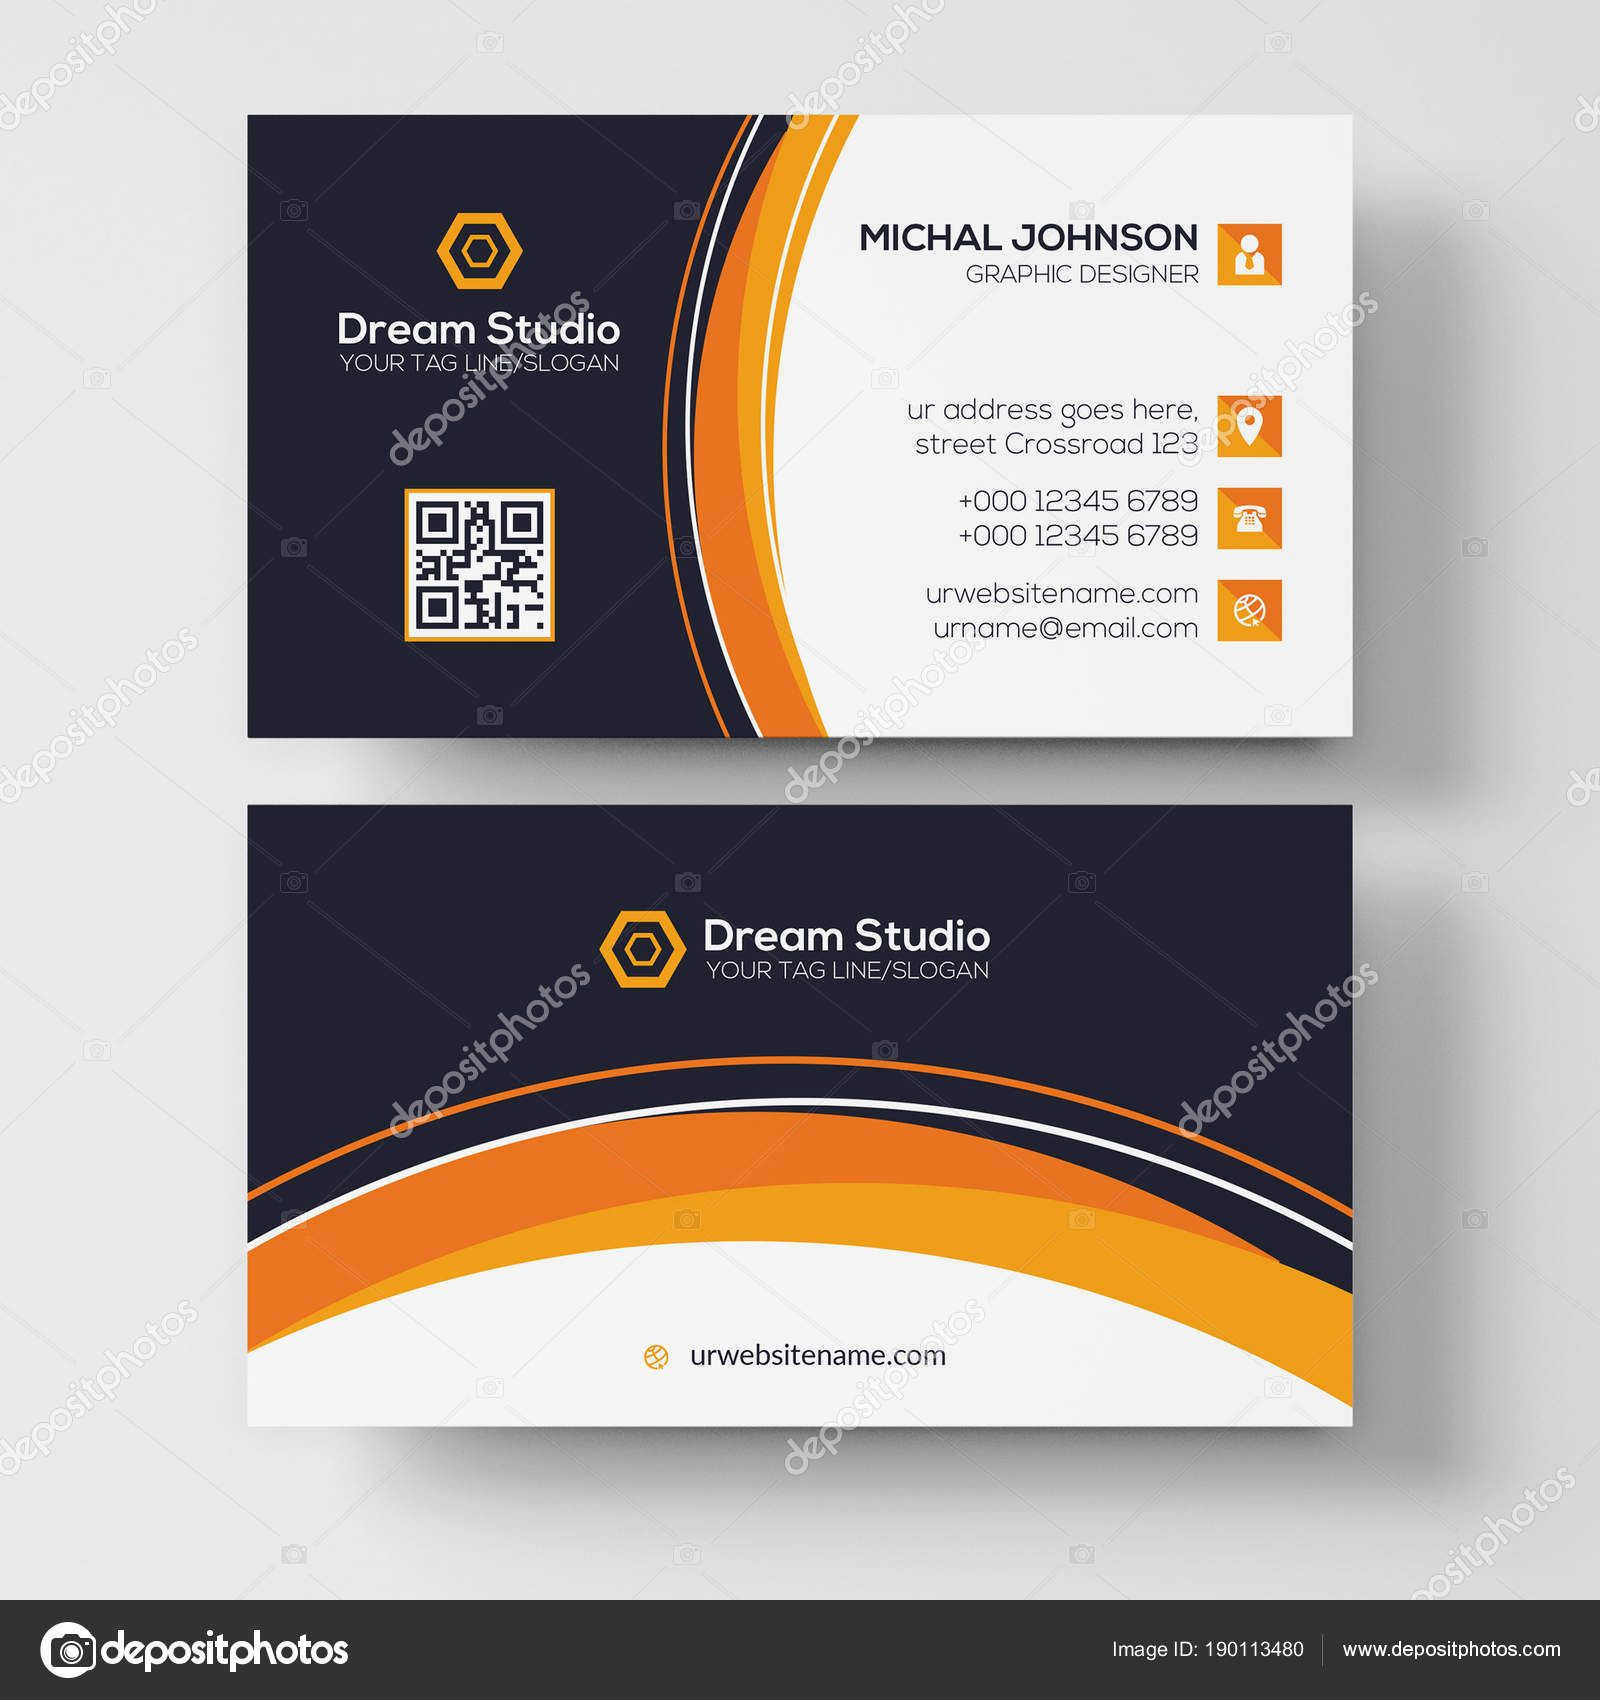 Download Business Card Vector Template Stock Illustration